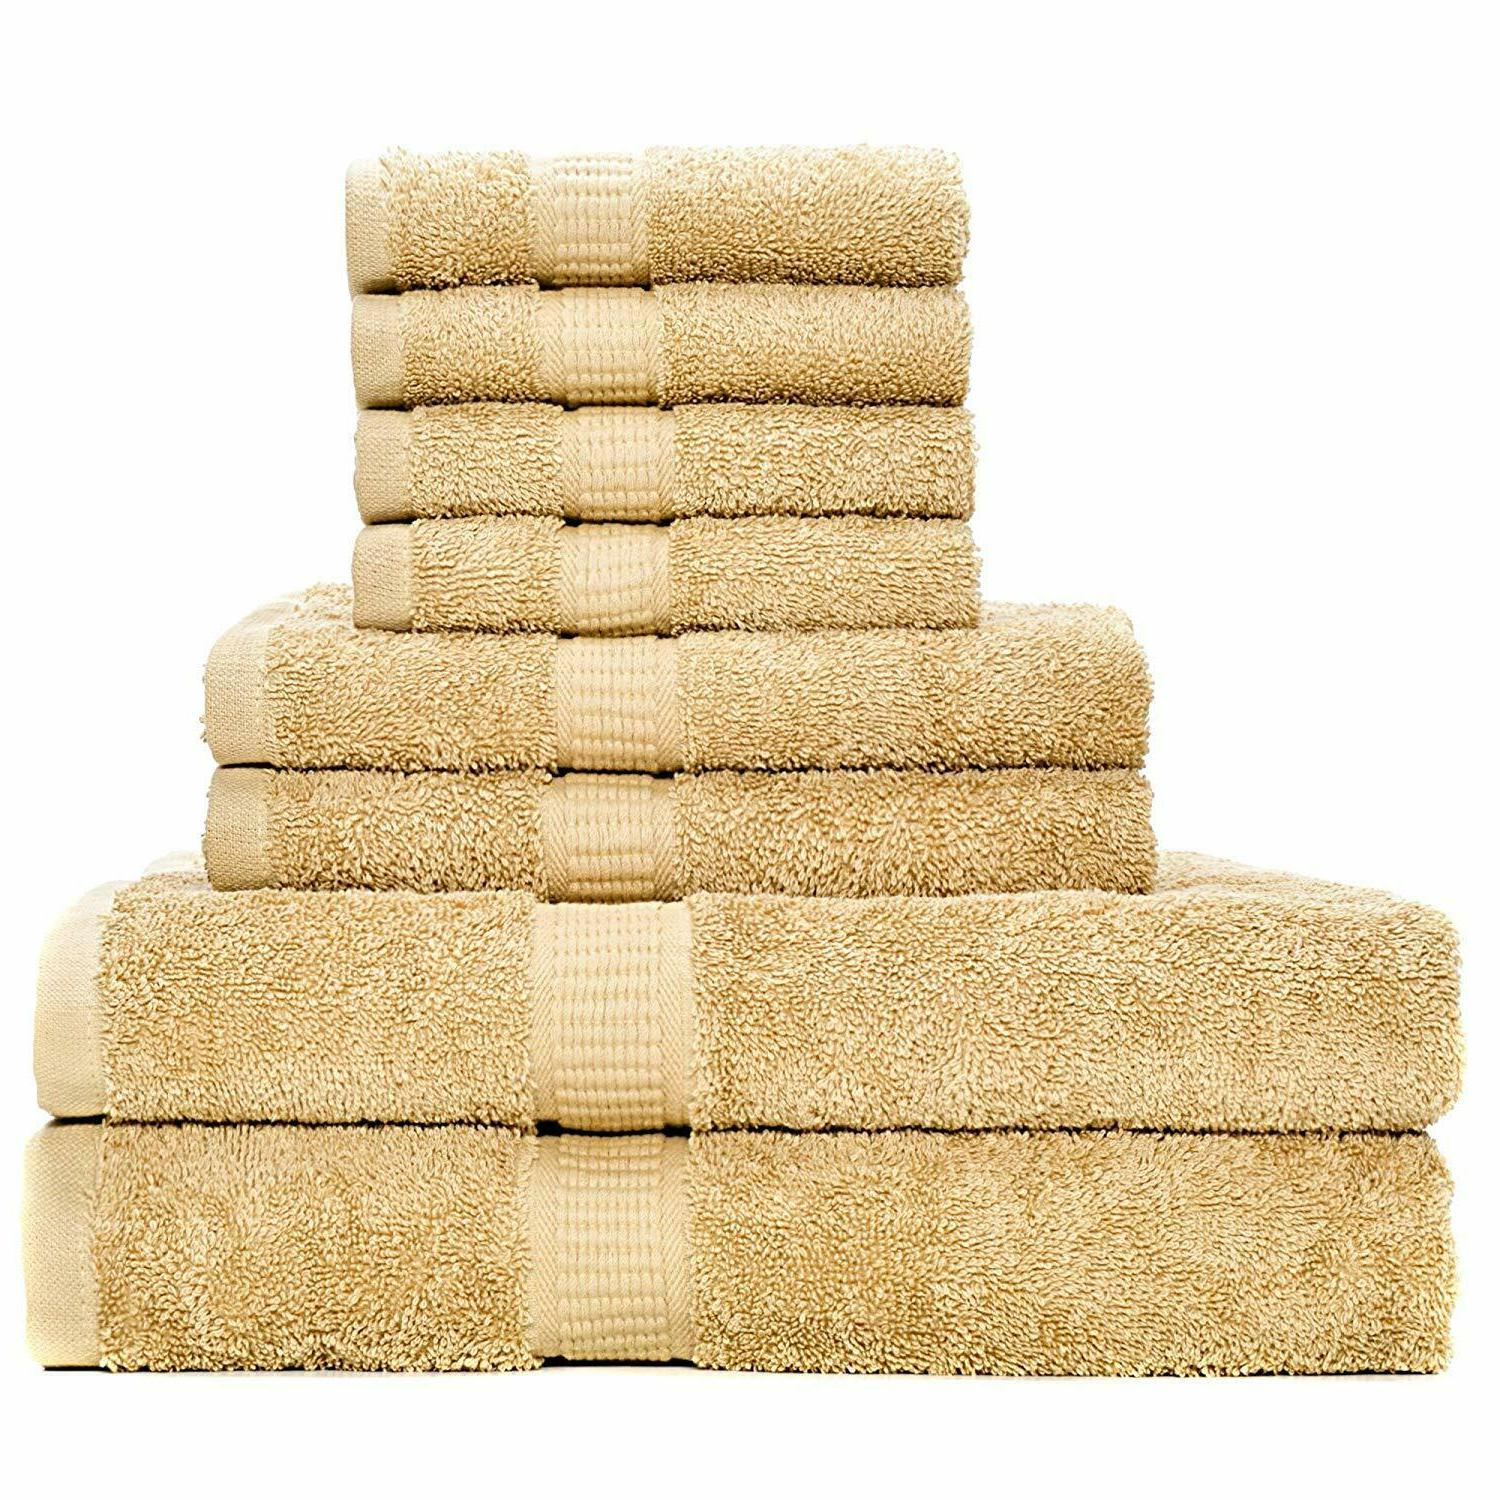 luxury bath towels gift set